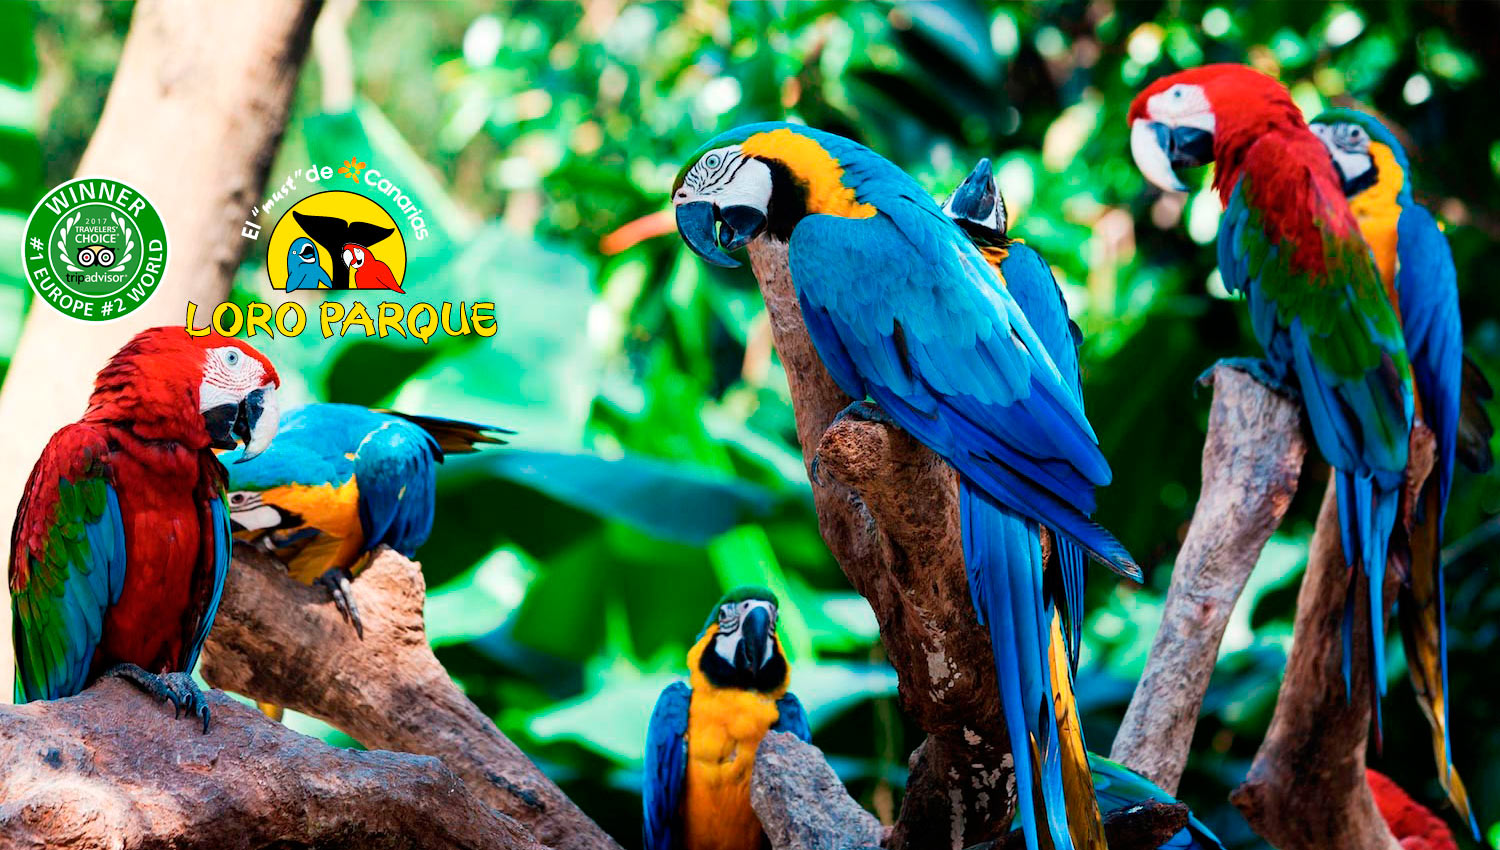 Loro Parque The World S Number 1 Zoo Things To Do In